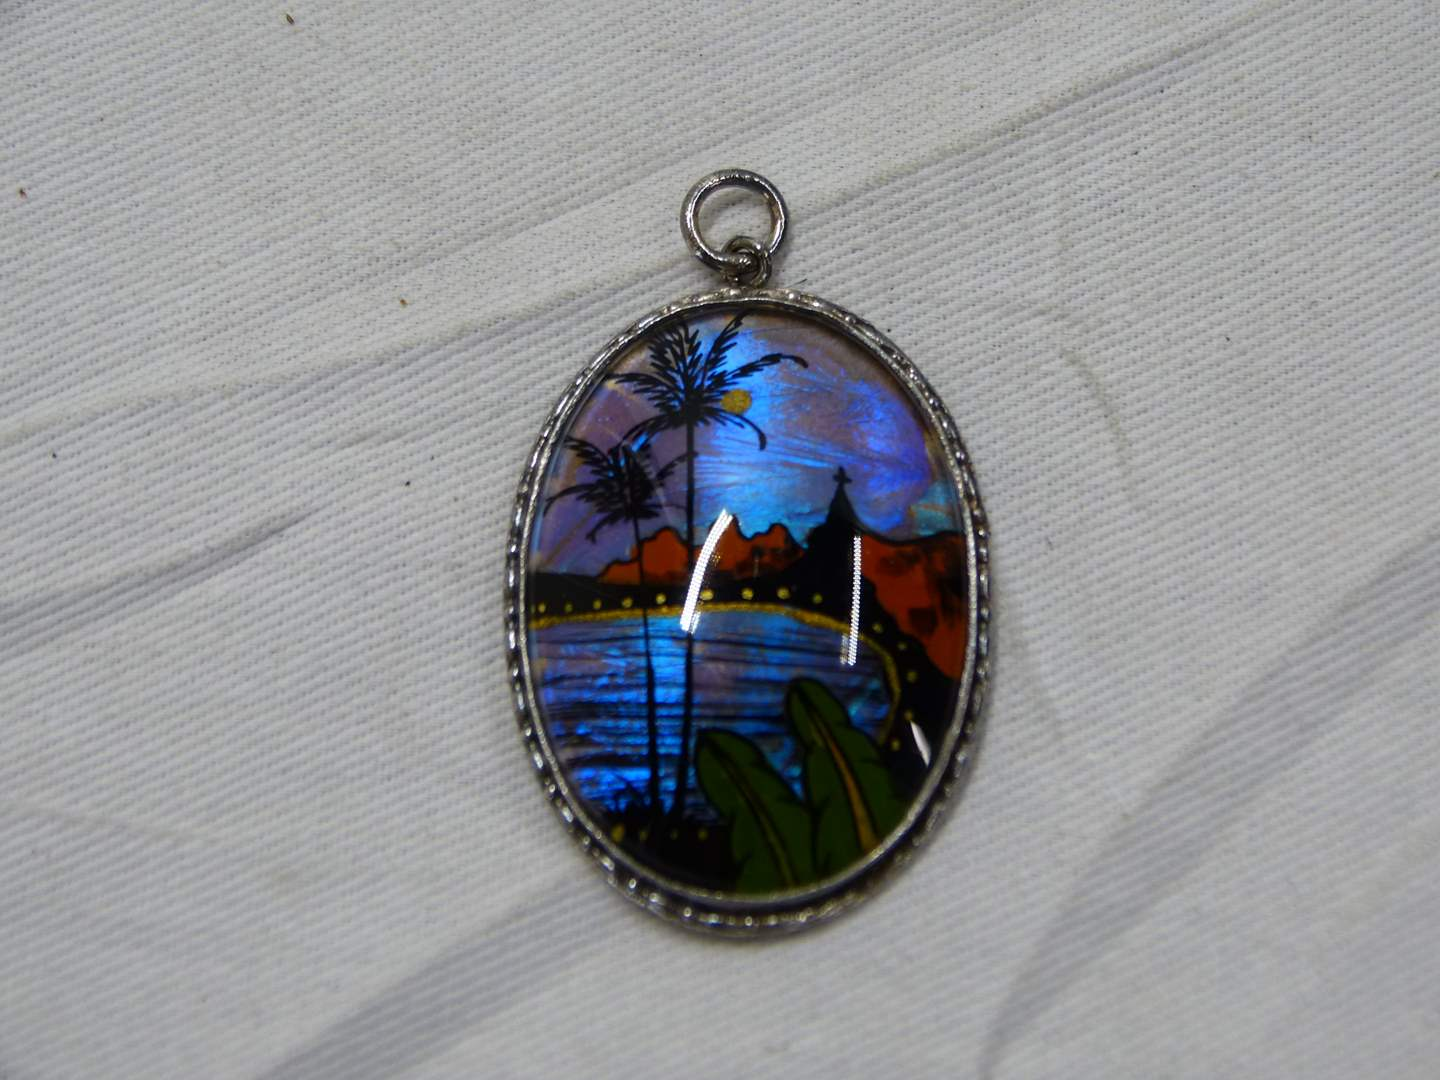 Lot # 248  Reverse painted on glass sterling silver pendant (monogrammed)